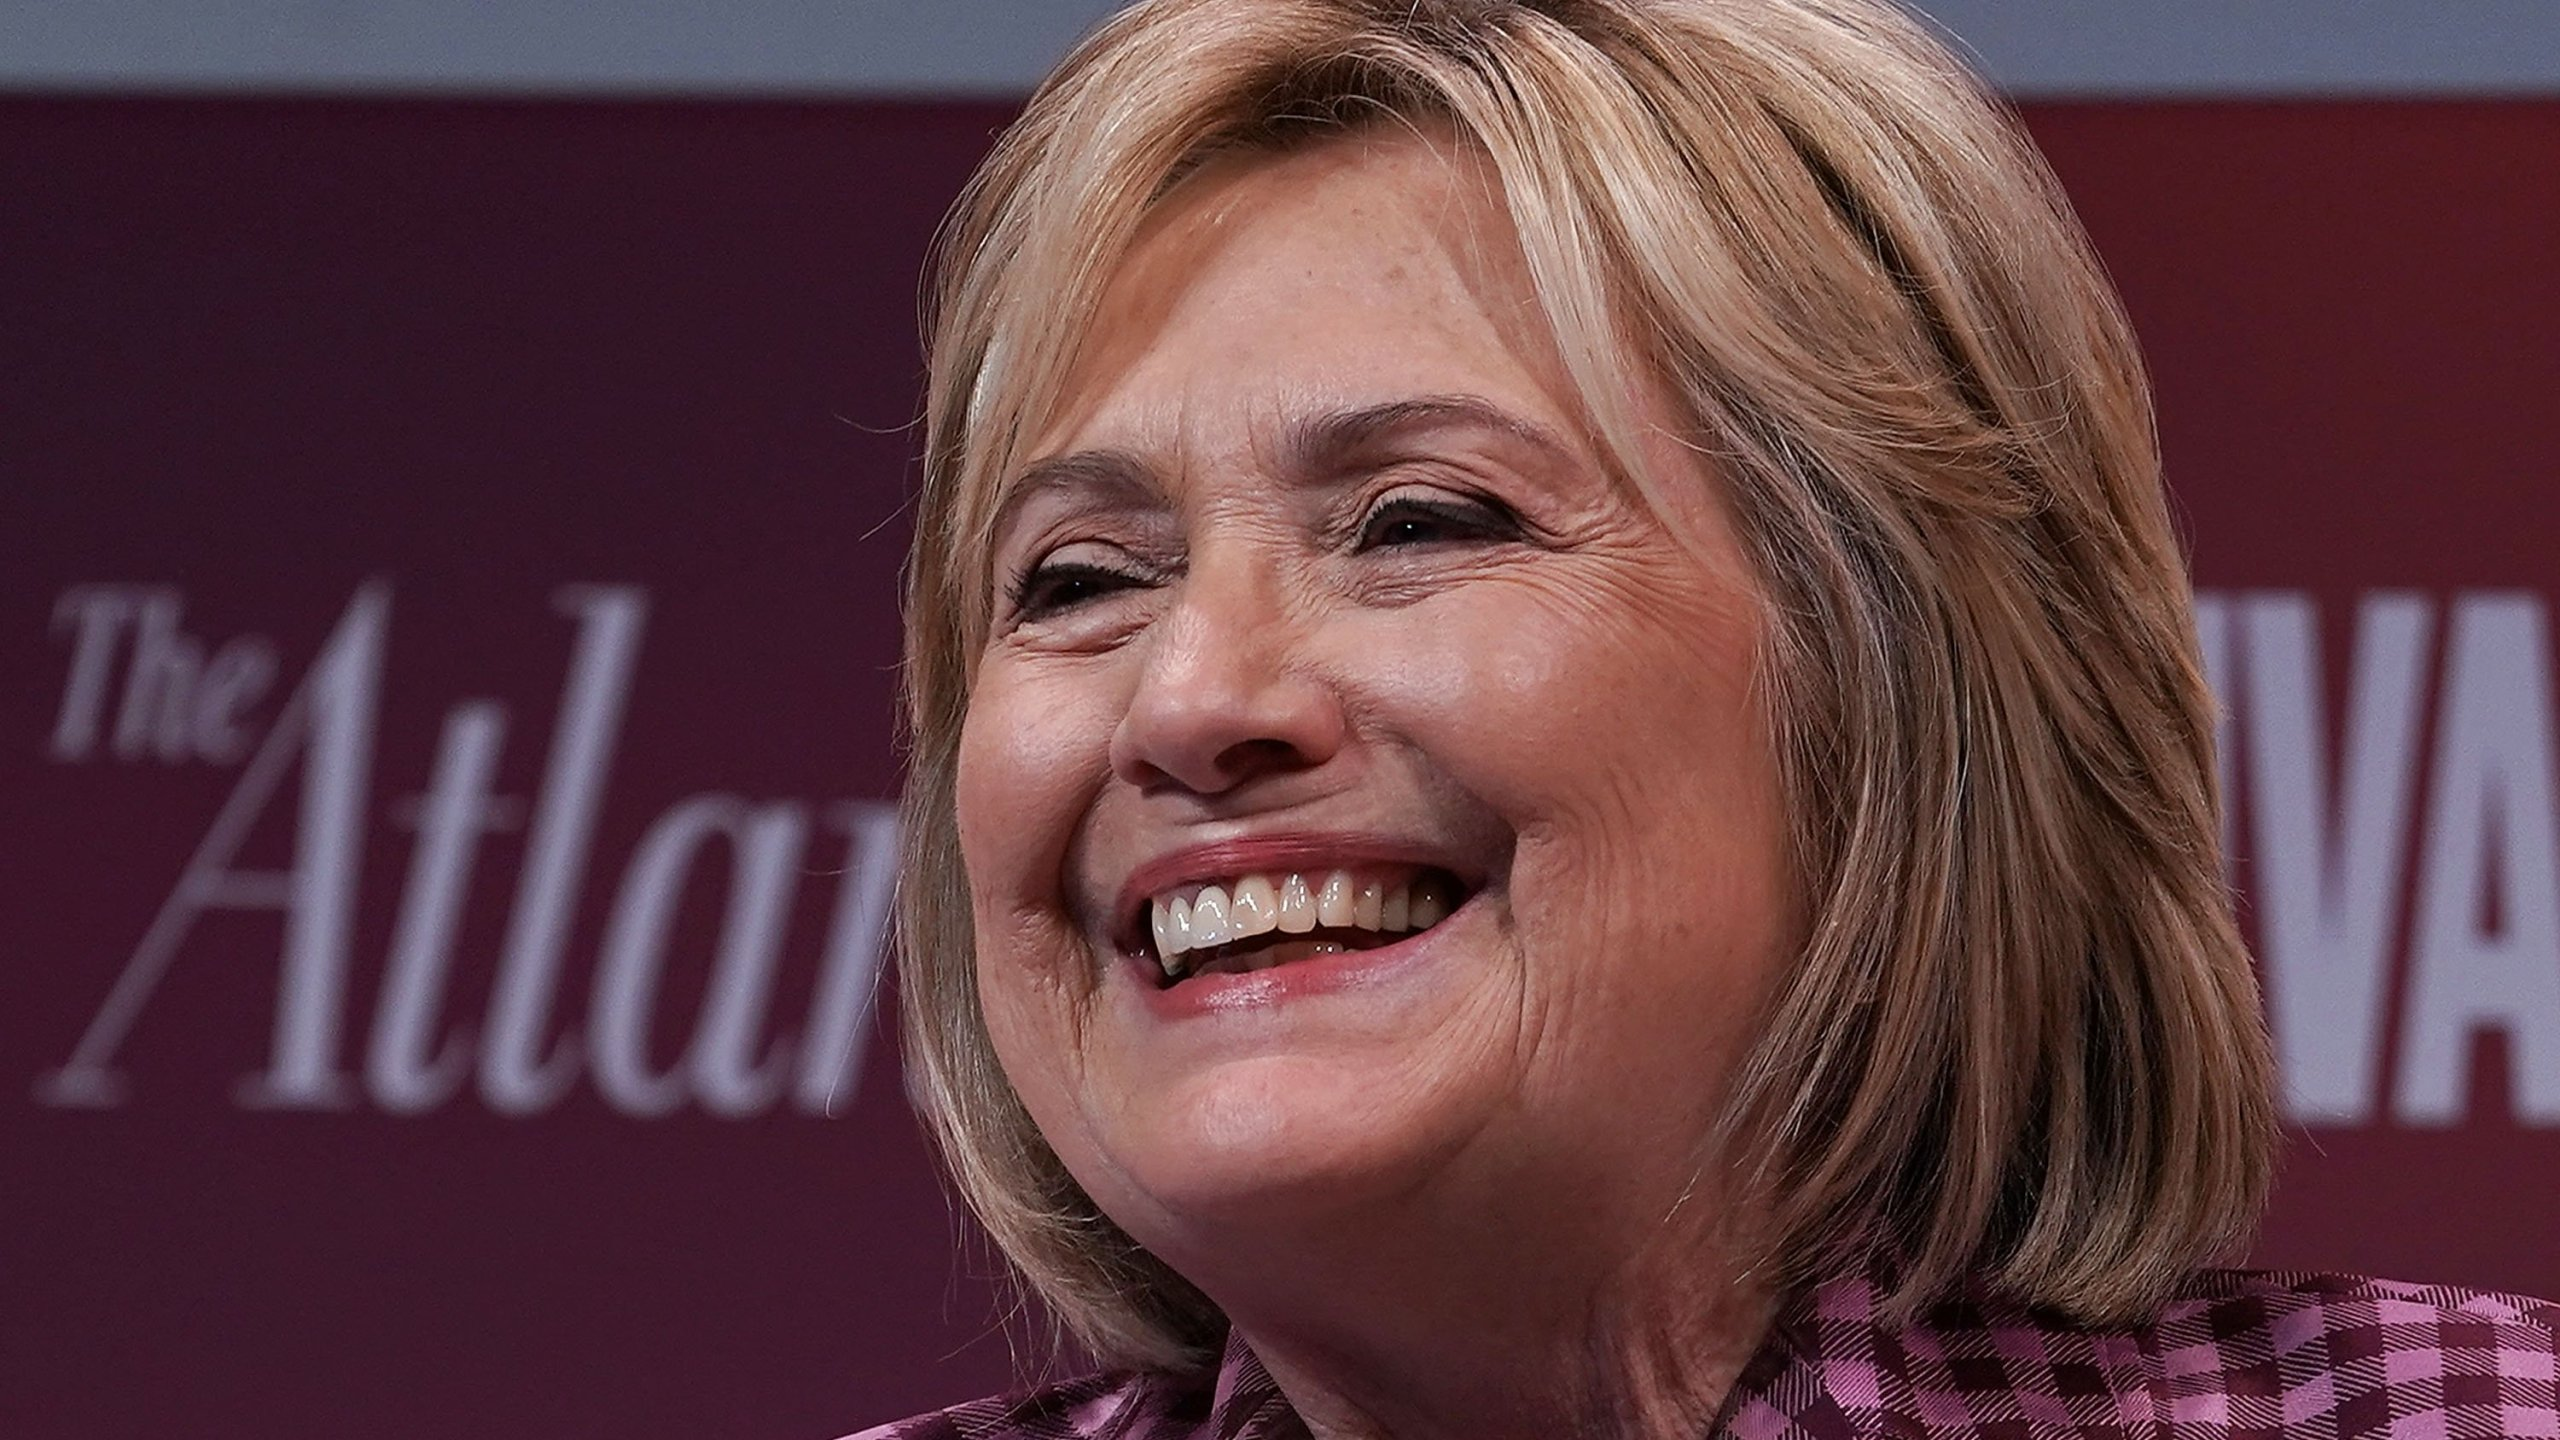 Hillary Clinton, pictured in an undated photo. (Credit: CNN)